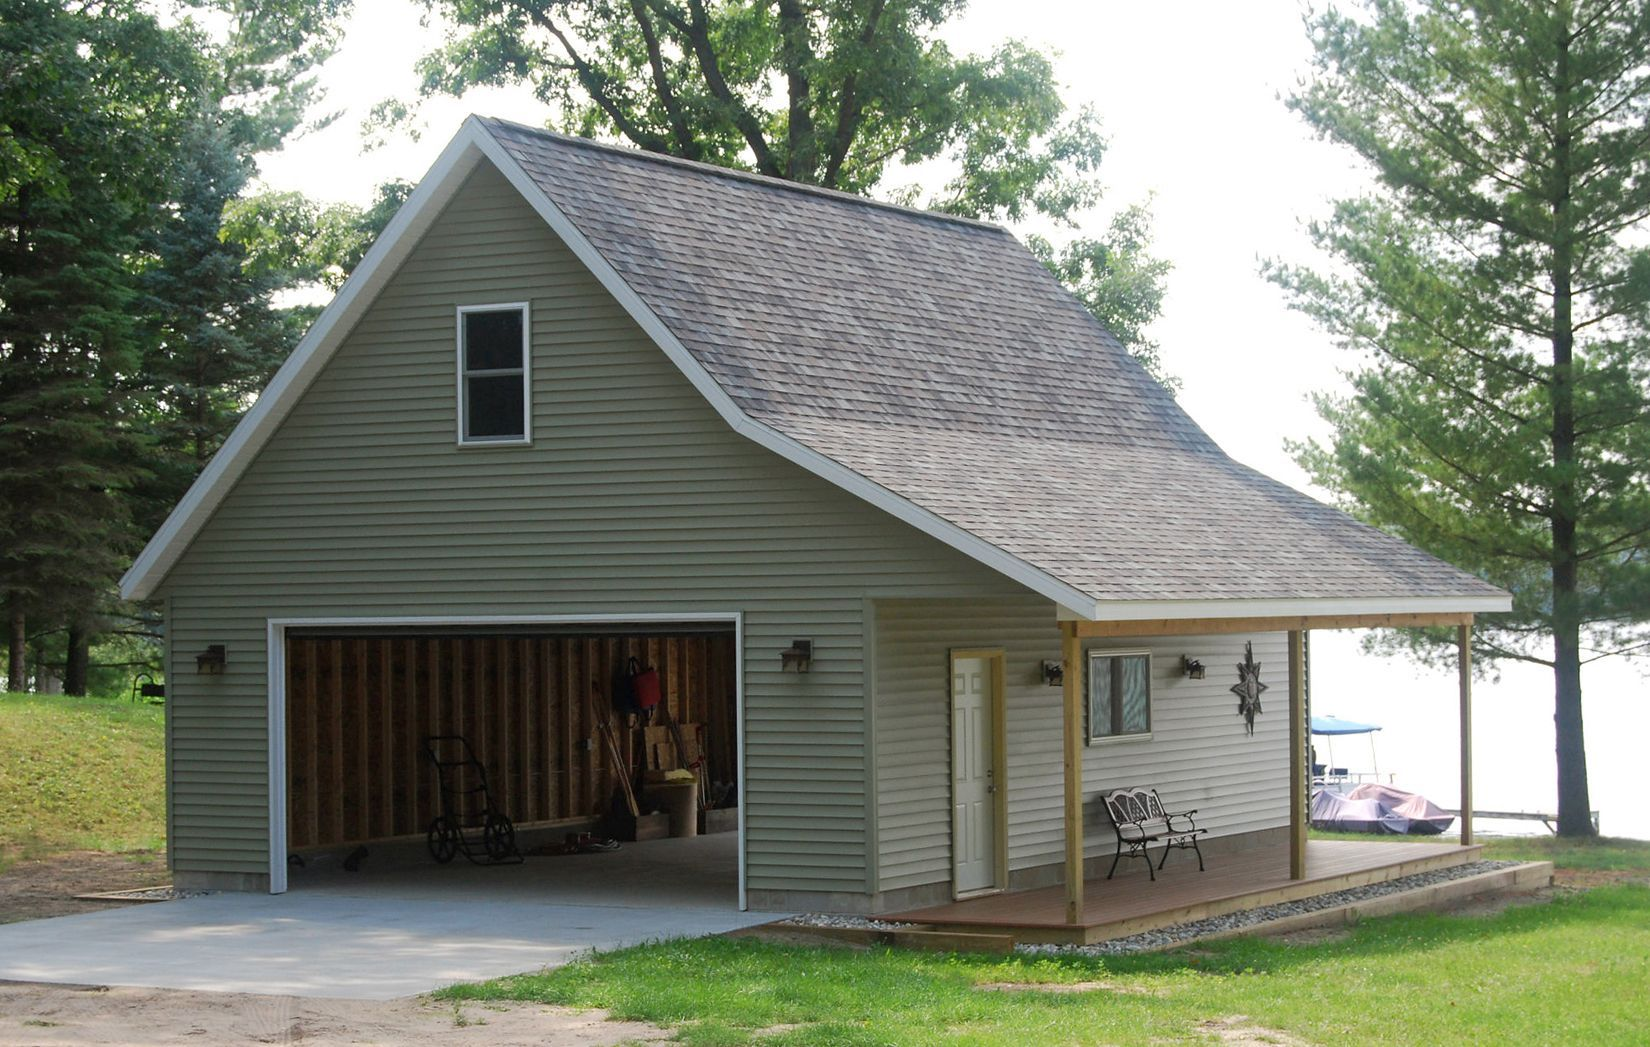 Pole Barn Garage Plans Welcome To Jb Custom Homes Where Excellence In Craftsmanship Is Our Ga In 2020 Barn Garage Plans Metal Barn House Plans Barn House Plans